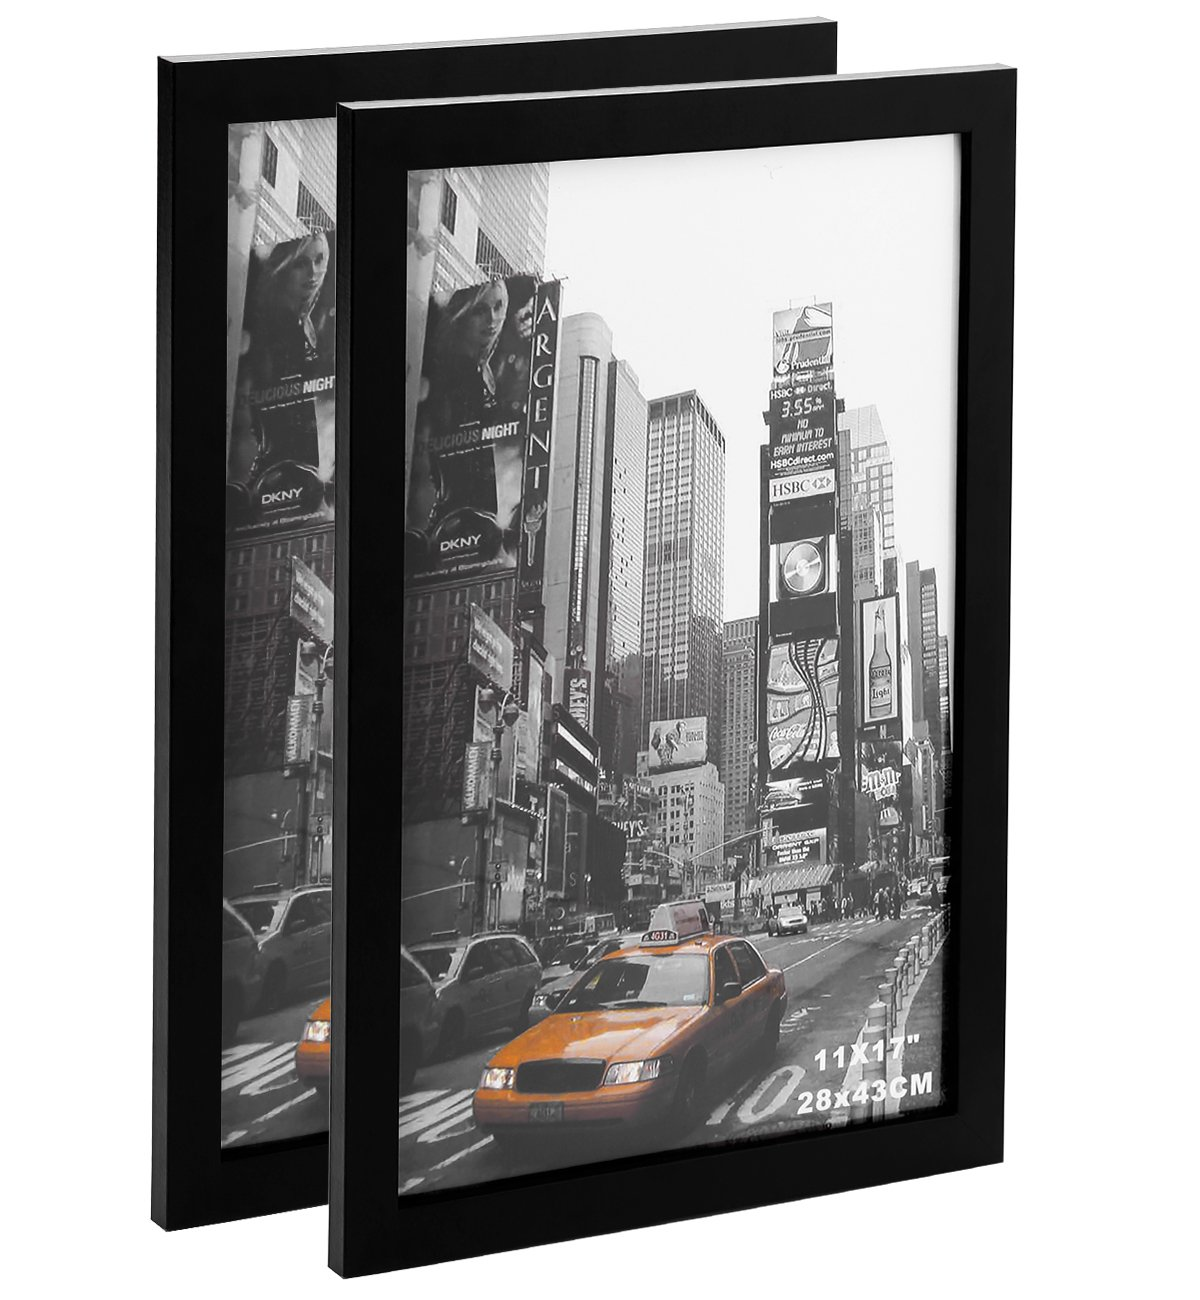 1 Pack 11x17 Picture Photo Frames - Made to Display Legal Sized Paper Wall Mounting Material Included Black LAST G GF1707MB61^^NEW^^US